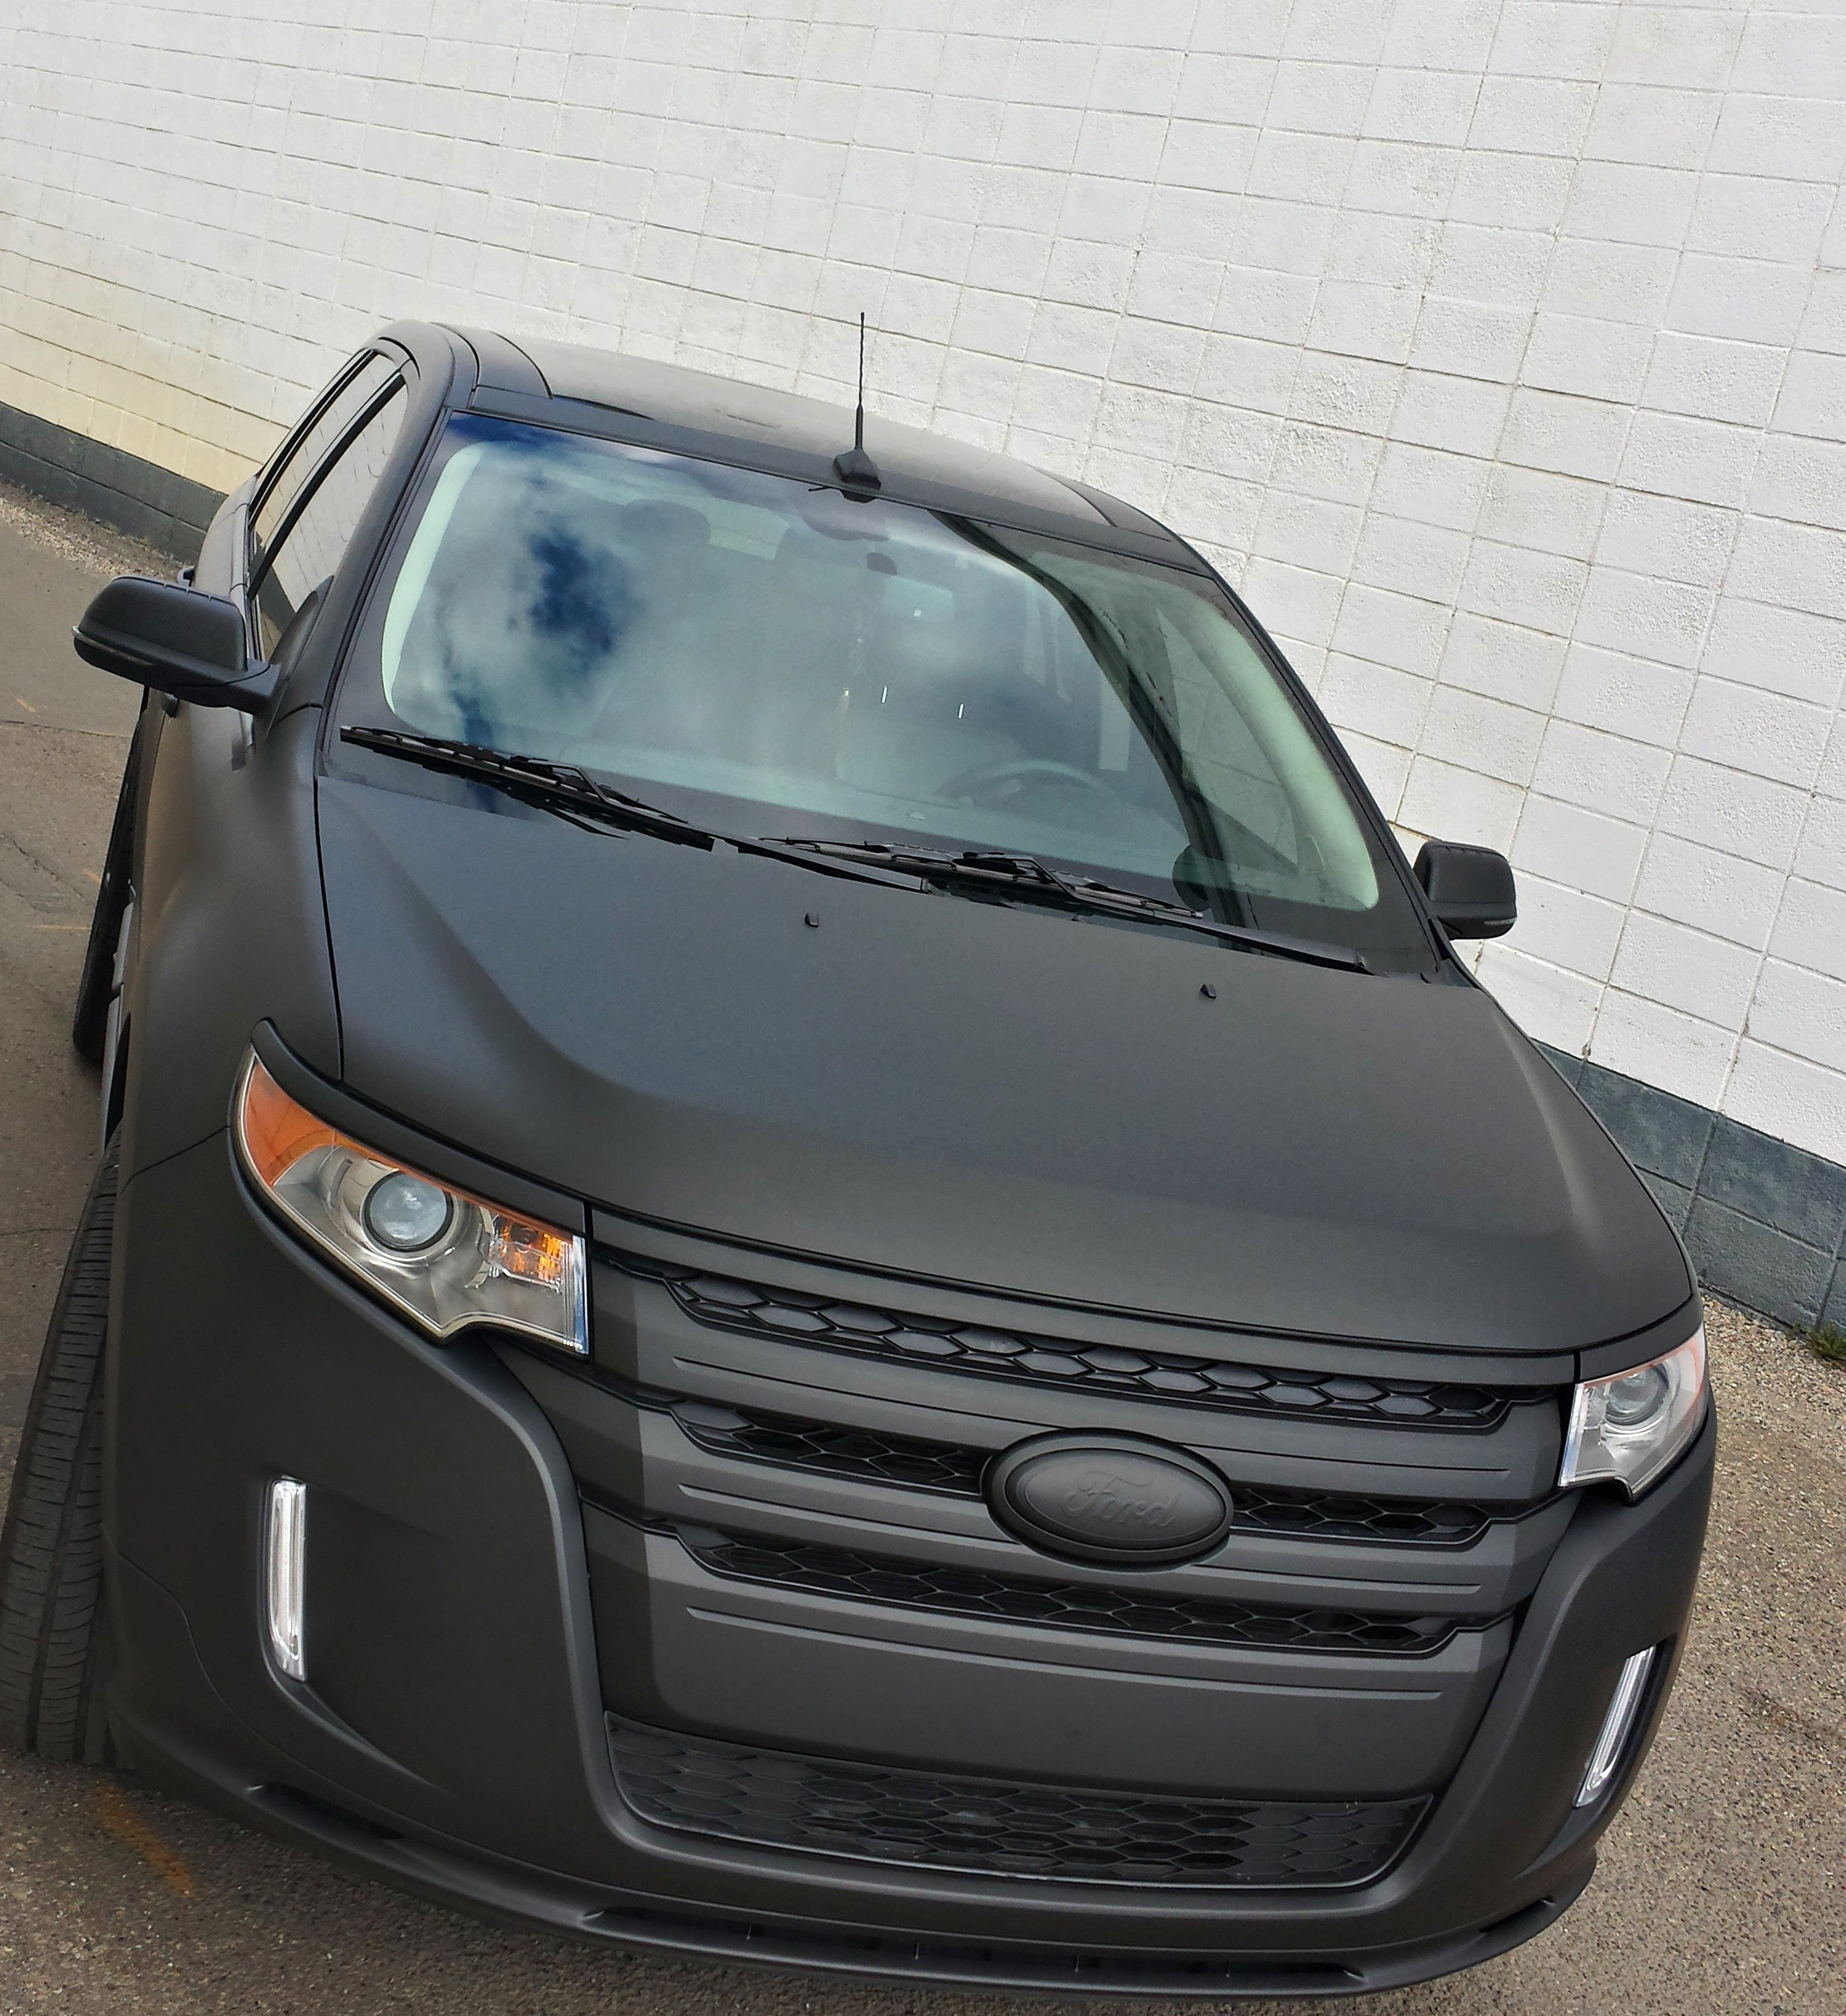 Matte Black Ford Edge 2